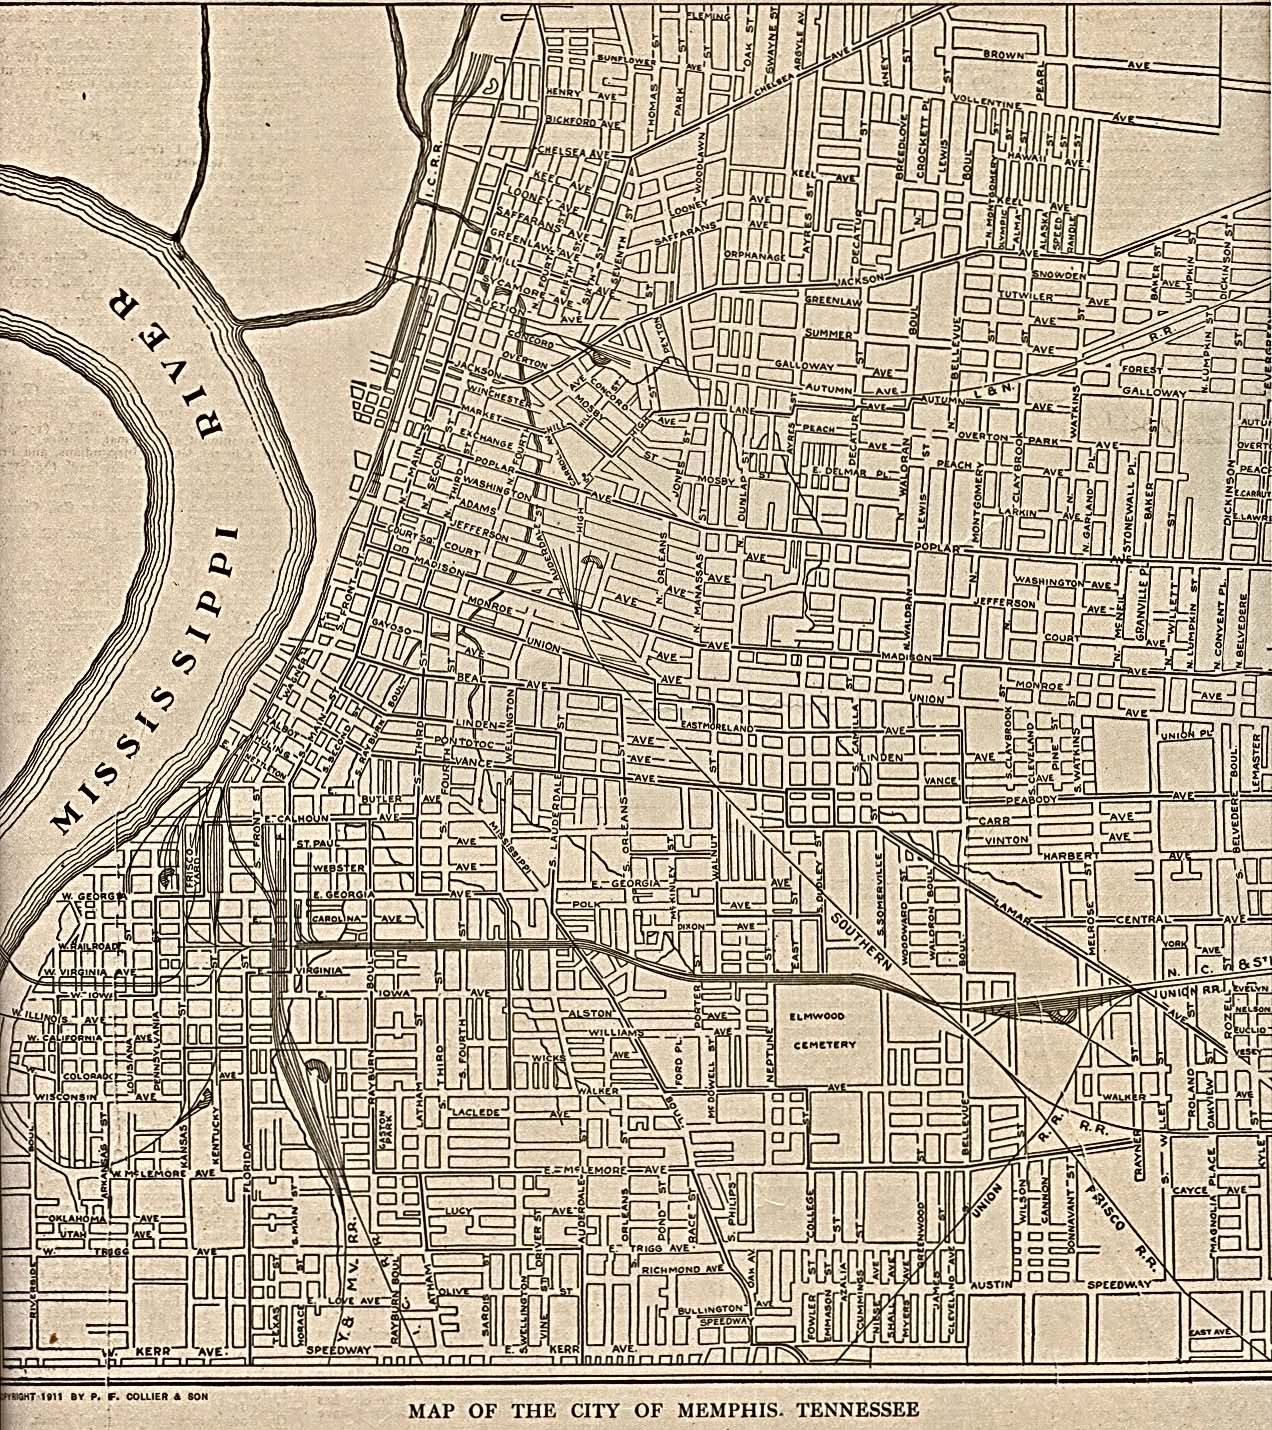 Memphis City Map, Tennessee, United States 1911